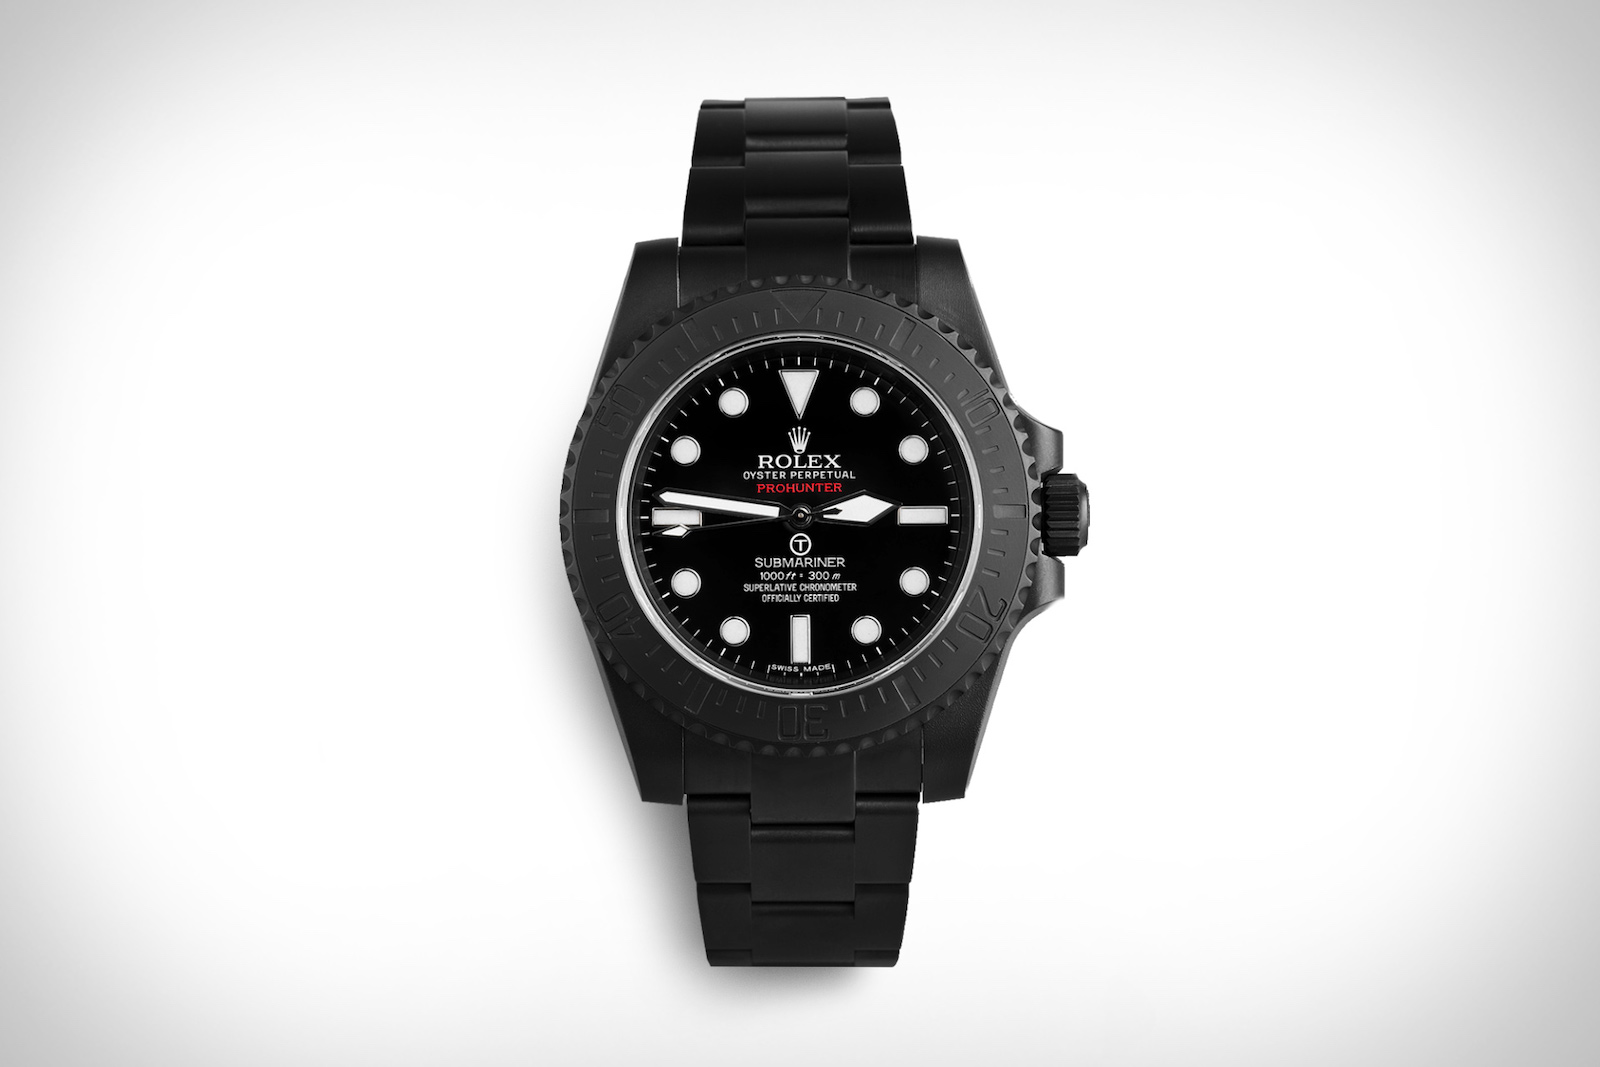 Limited to Only 100 Pieces: The Pro Hunter Rolex Submariner Military Watch 1